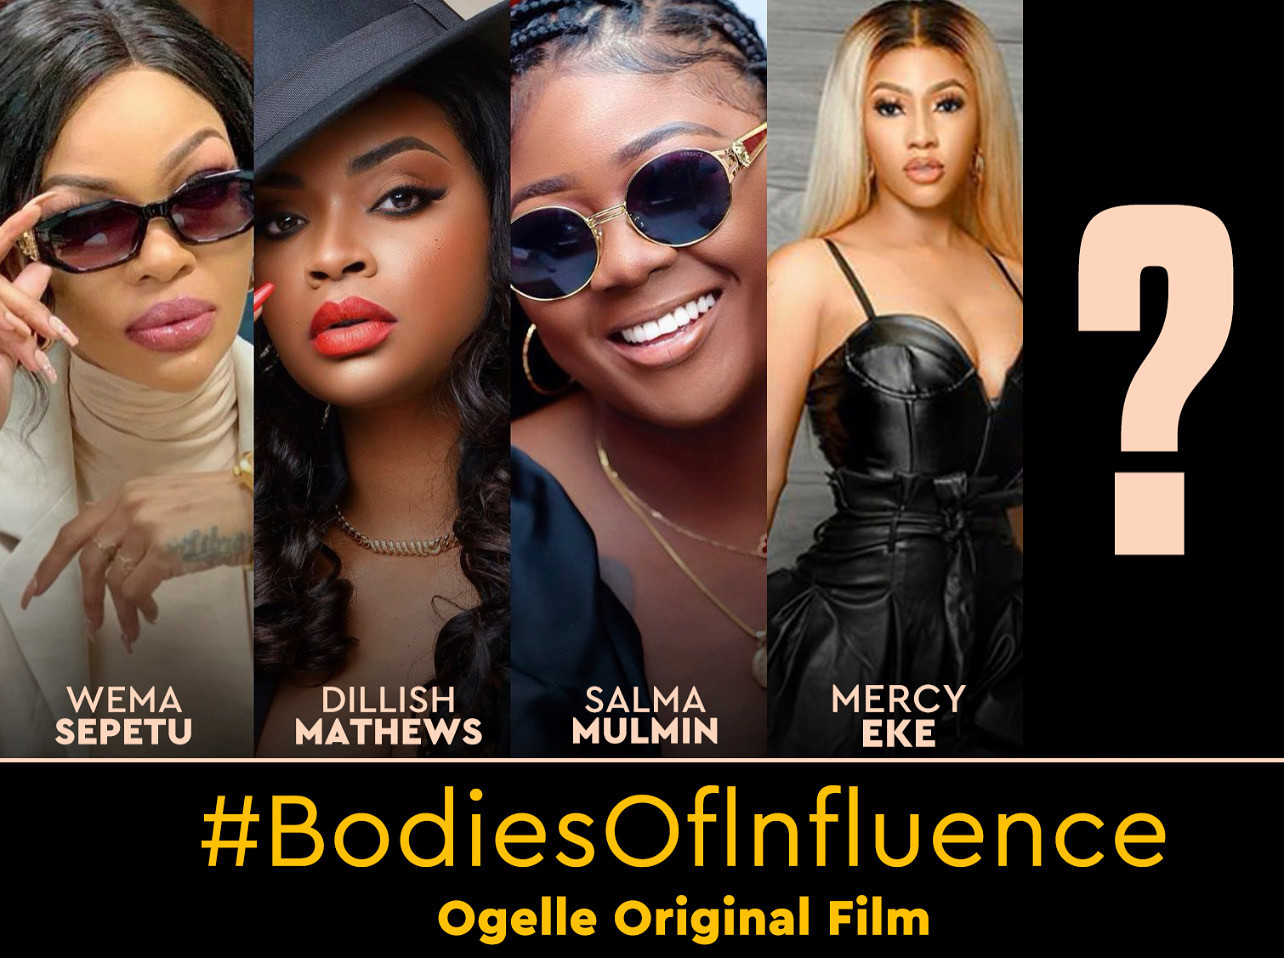 Bodies of Influence: Who's the Next Female Star?